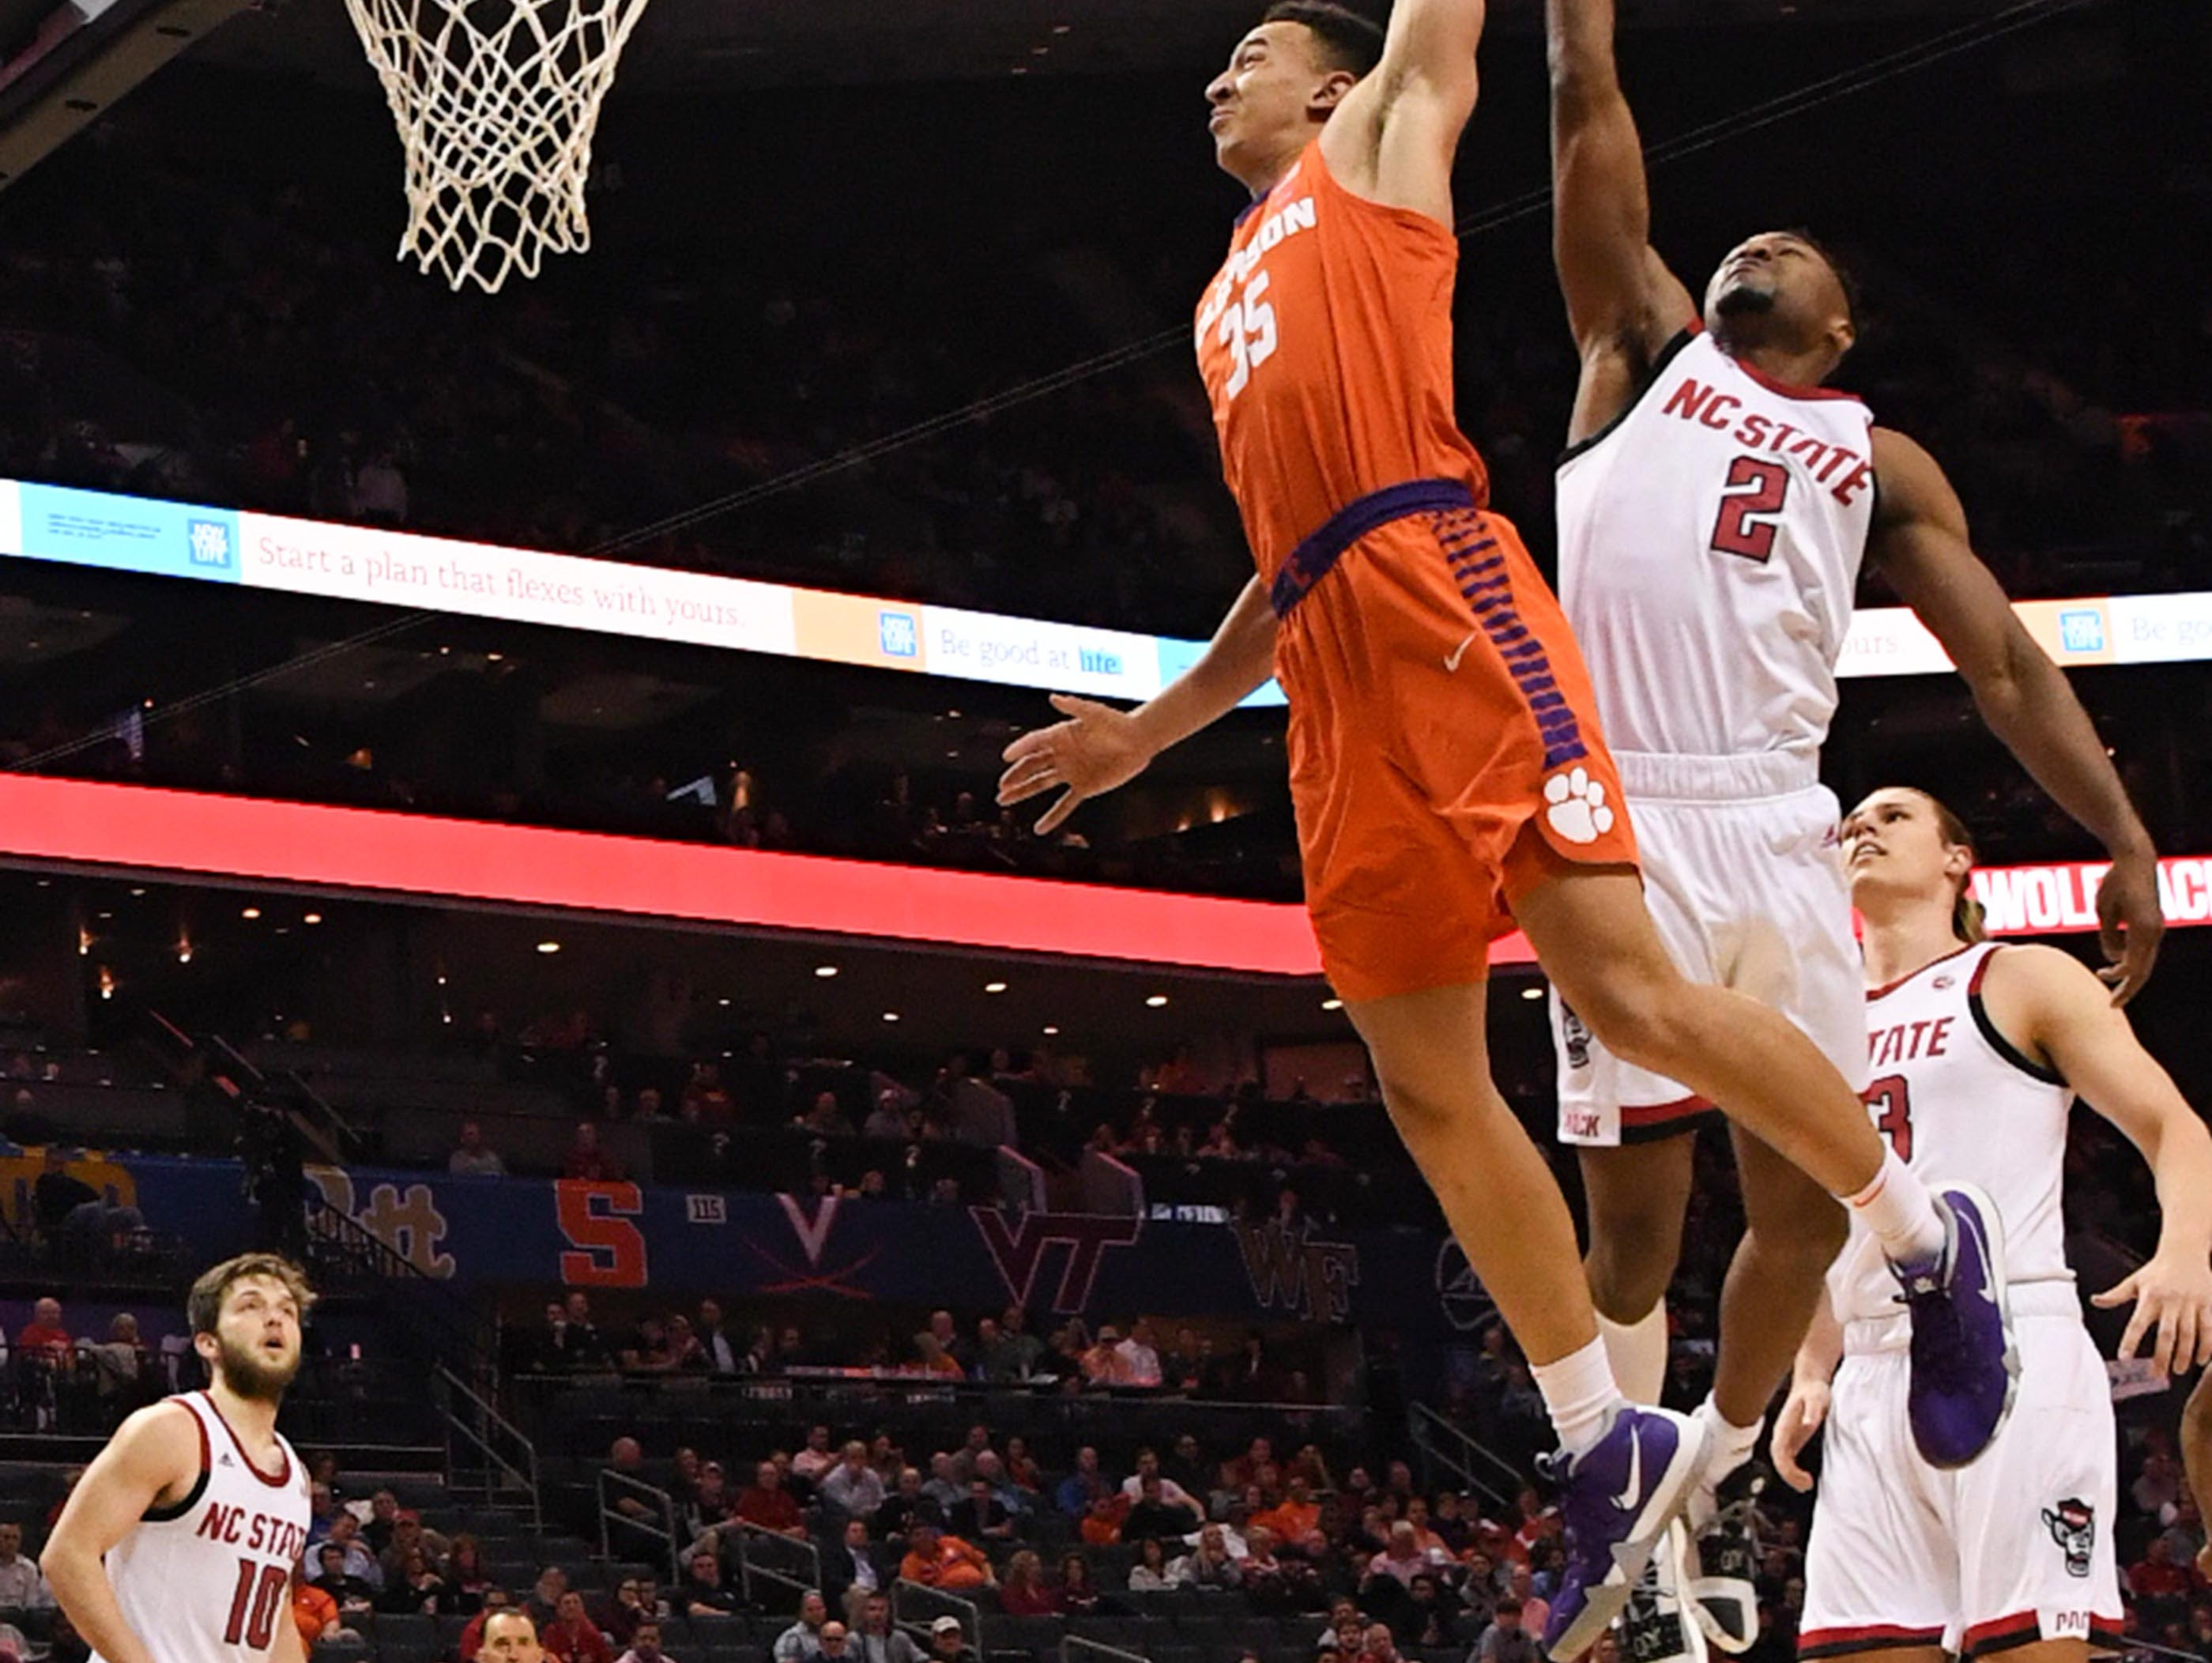 Clemson forward Javan White (35) dunks near N.C. State guard Torin Dorn(2) during the second half at the Spectrum Center in Charlotte, N.C. Tuesday, March 12, 2019.